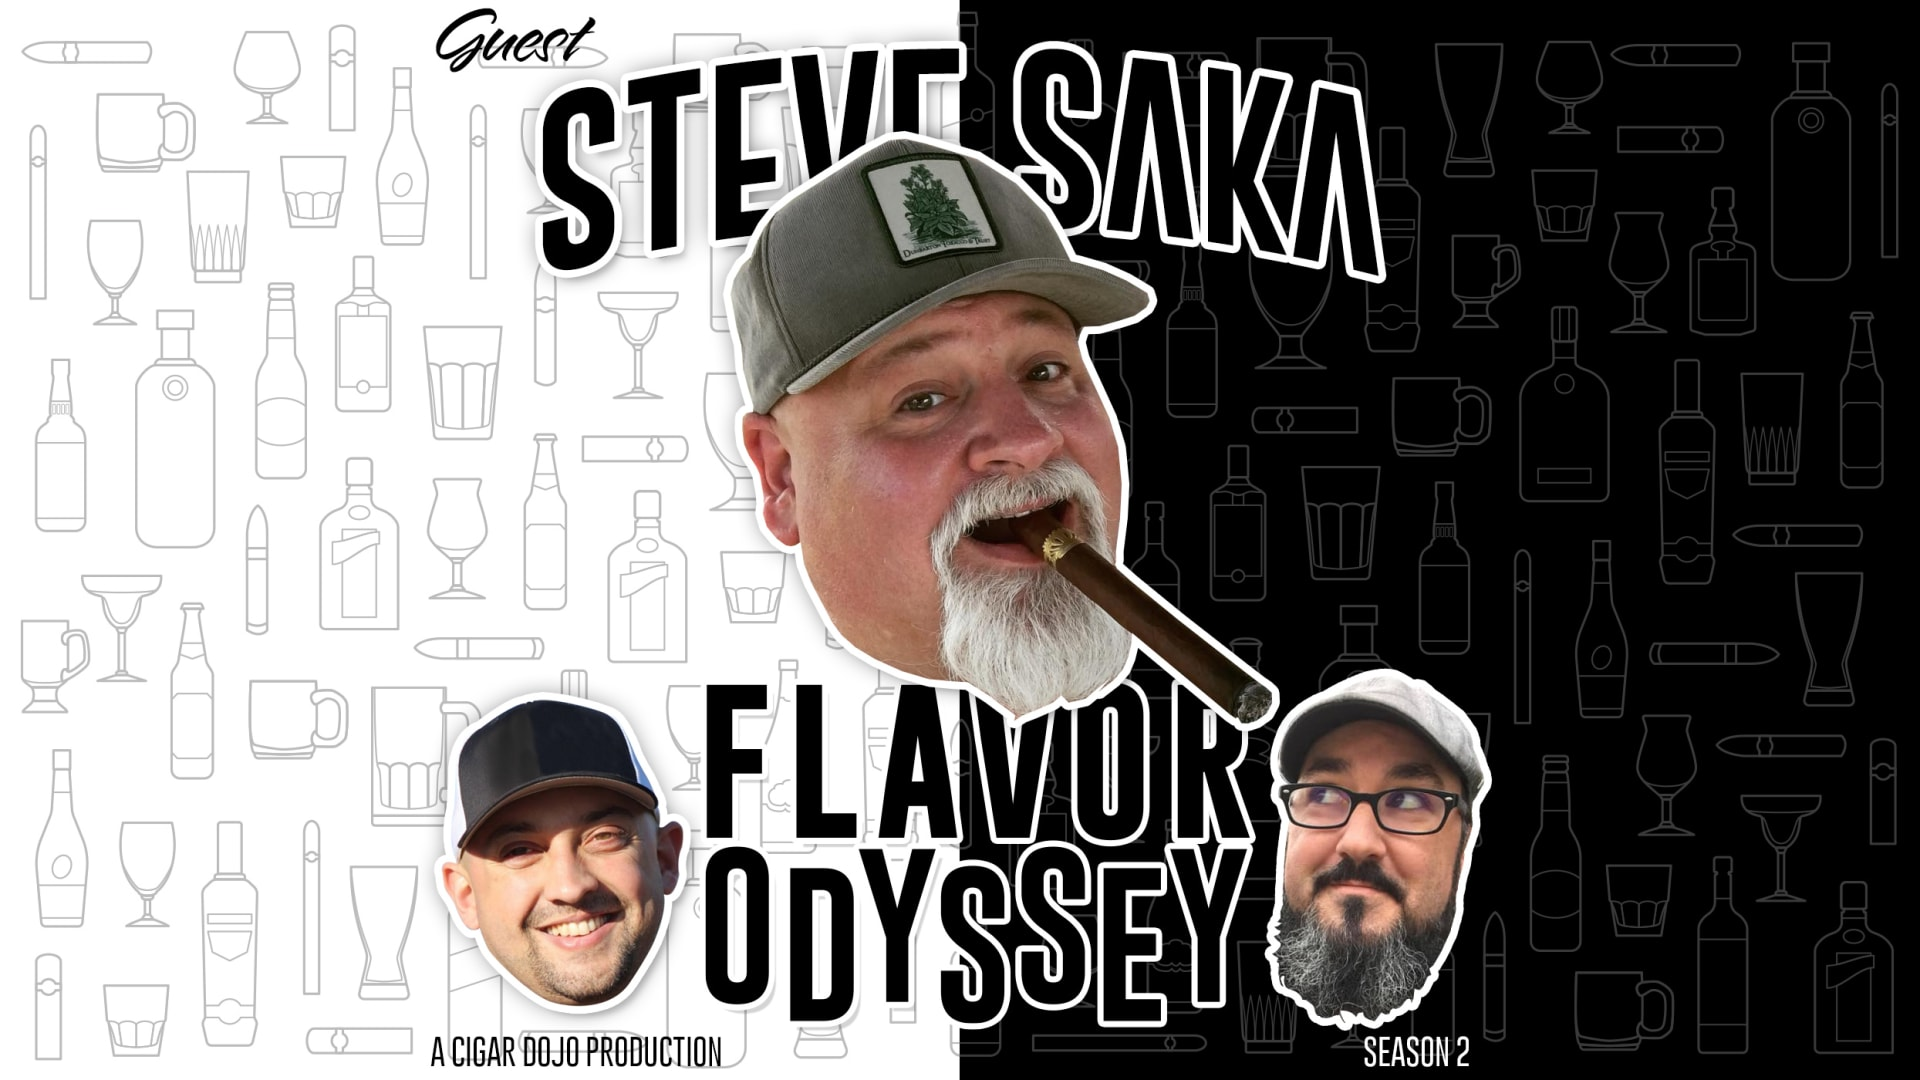 Flavor Odyssey – Sin Compromiso paired with Scotch Featured Image